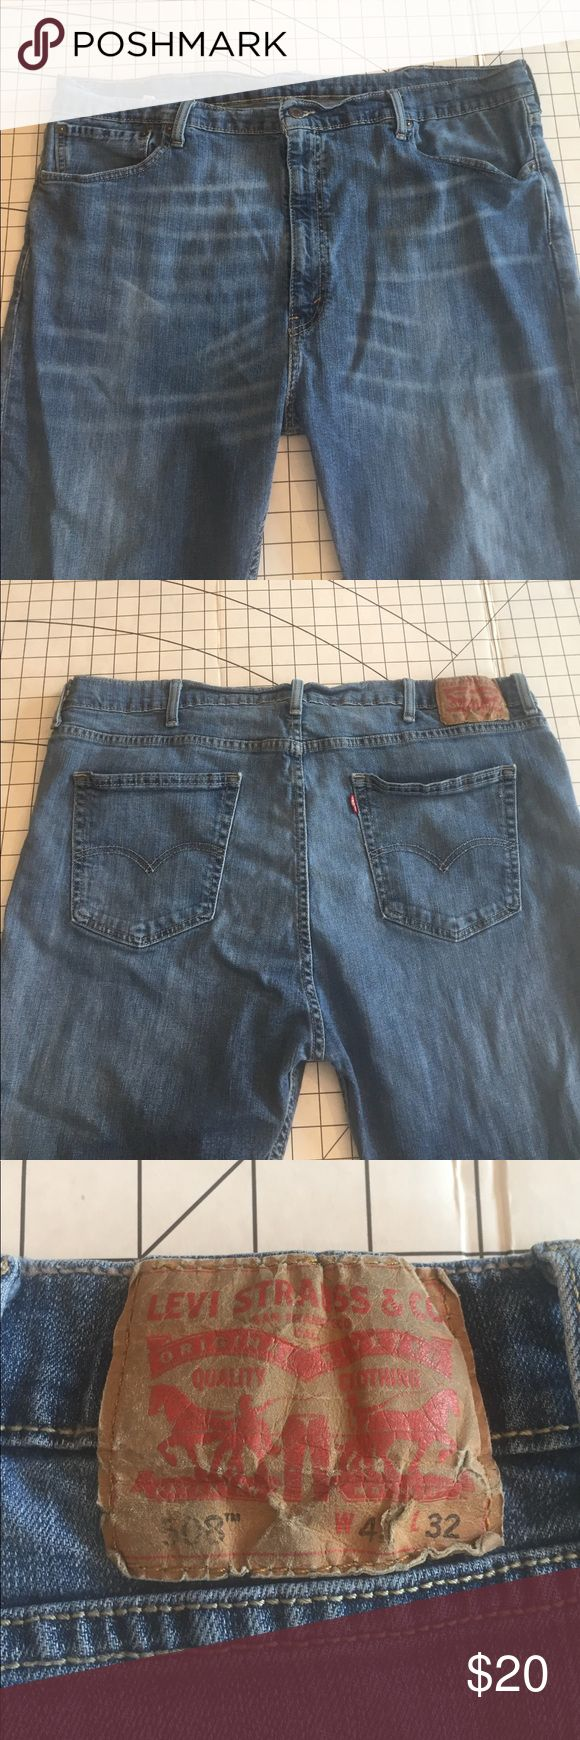 Levi's 508's 42 x 32 High Rise Great pants for making into shorts. Levi's Jeans